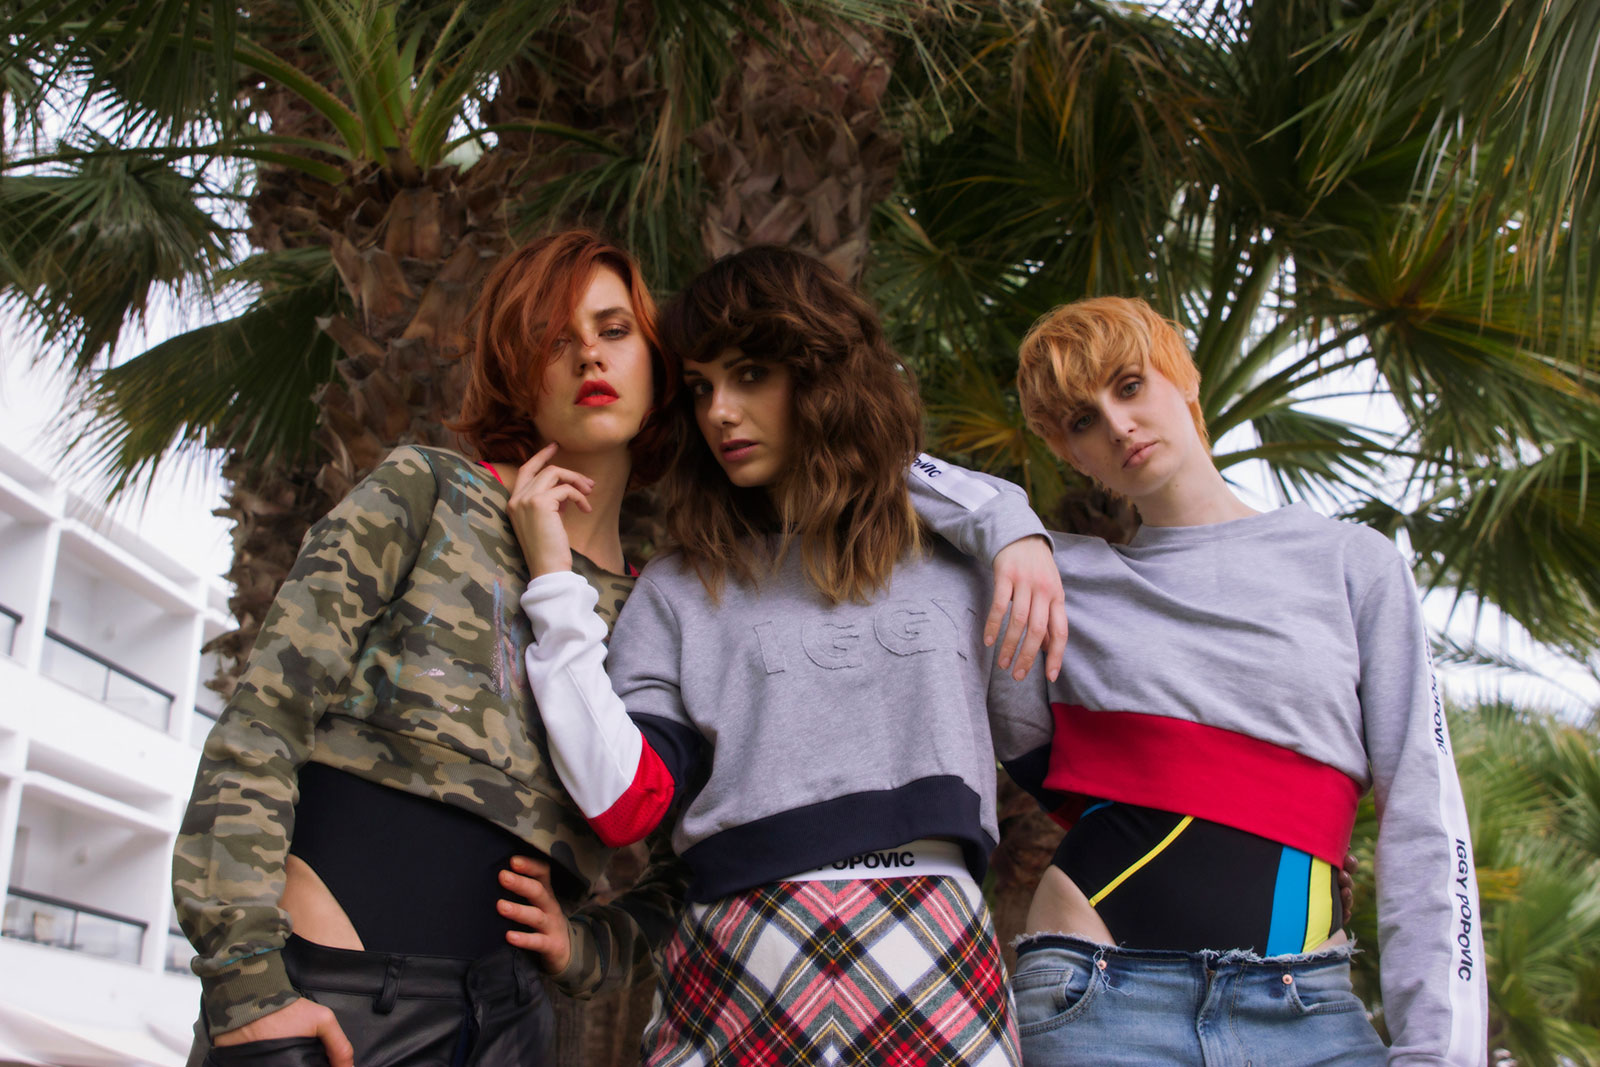 fashion photography models campaign palm trees